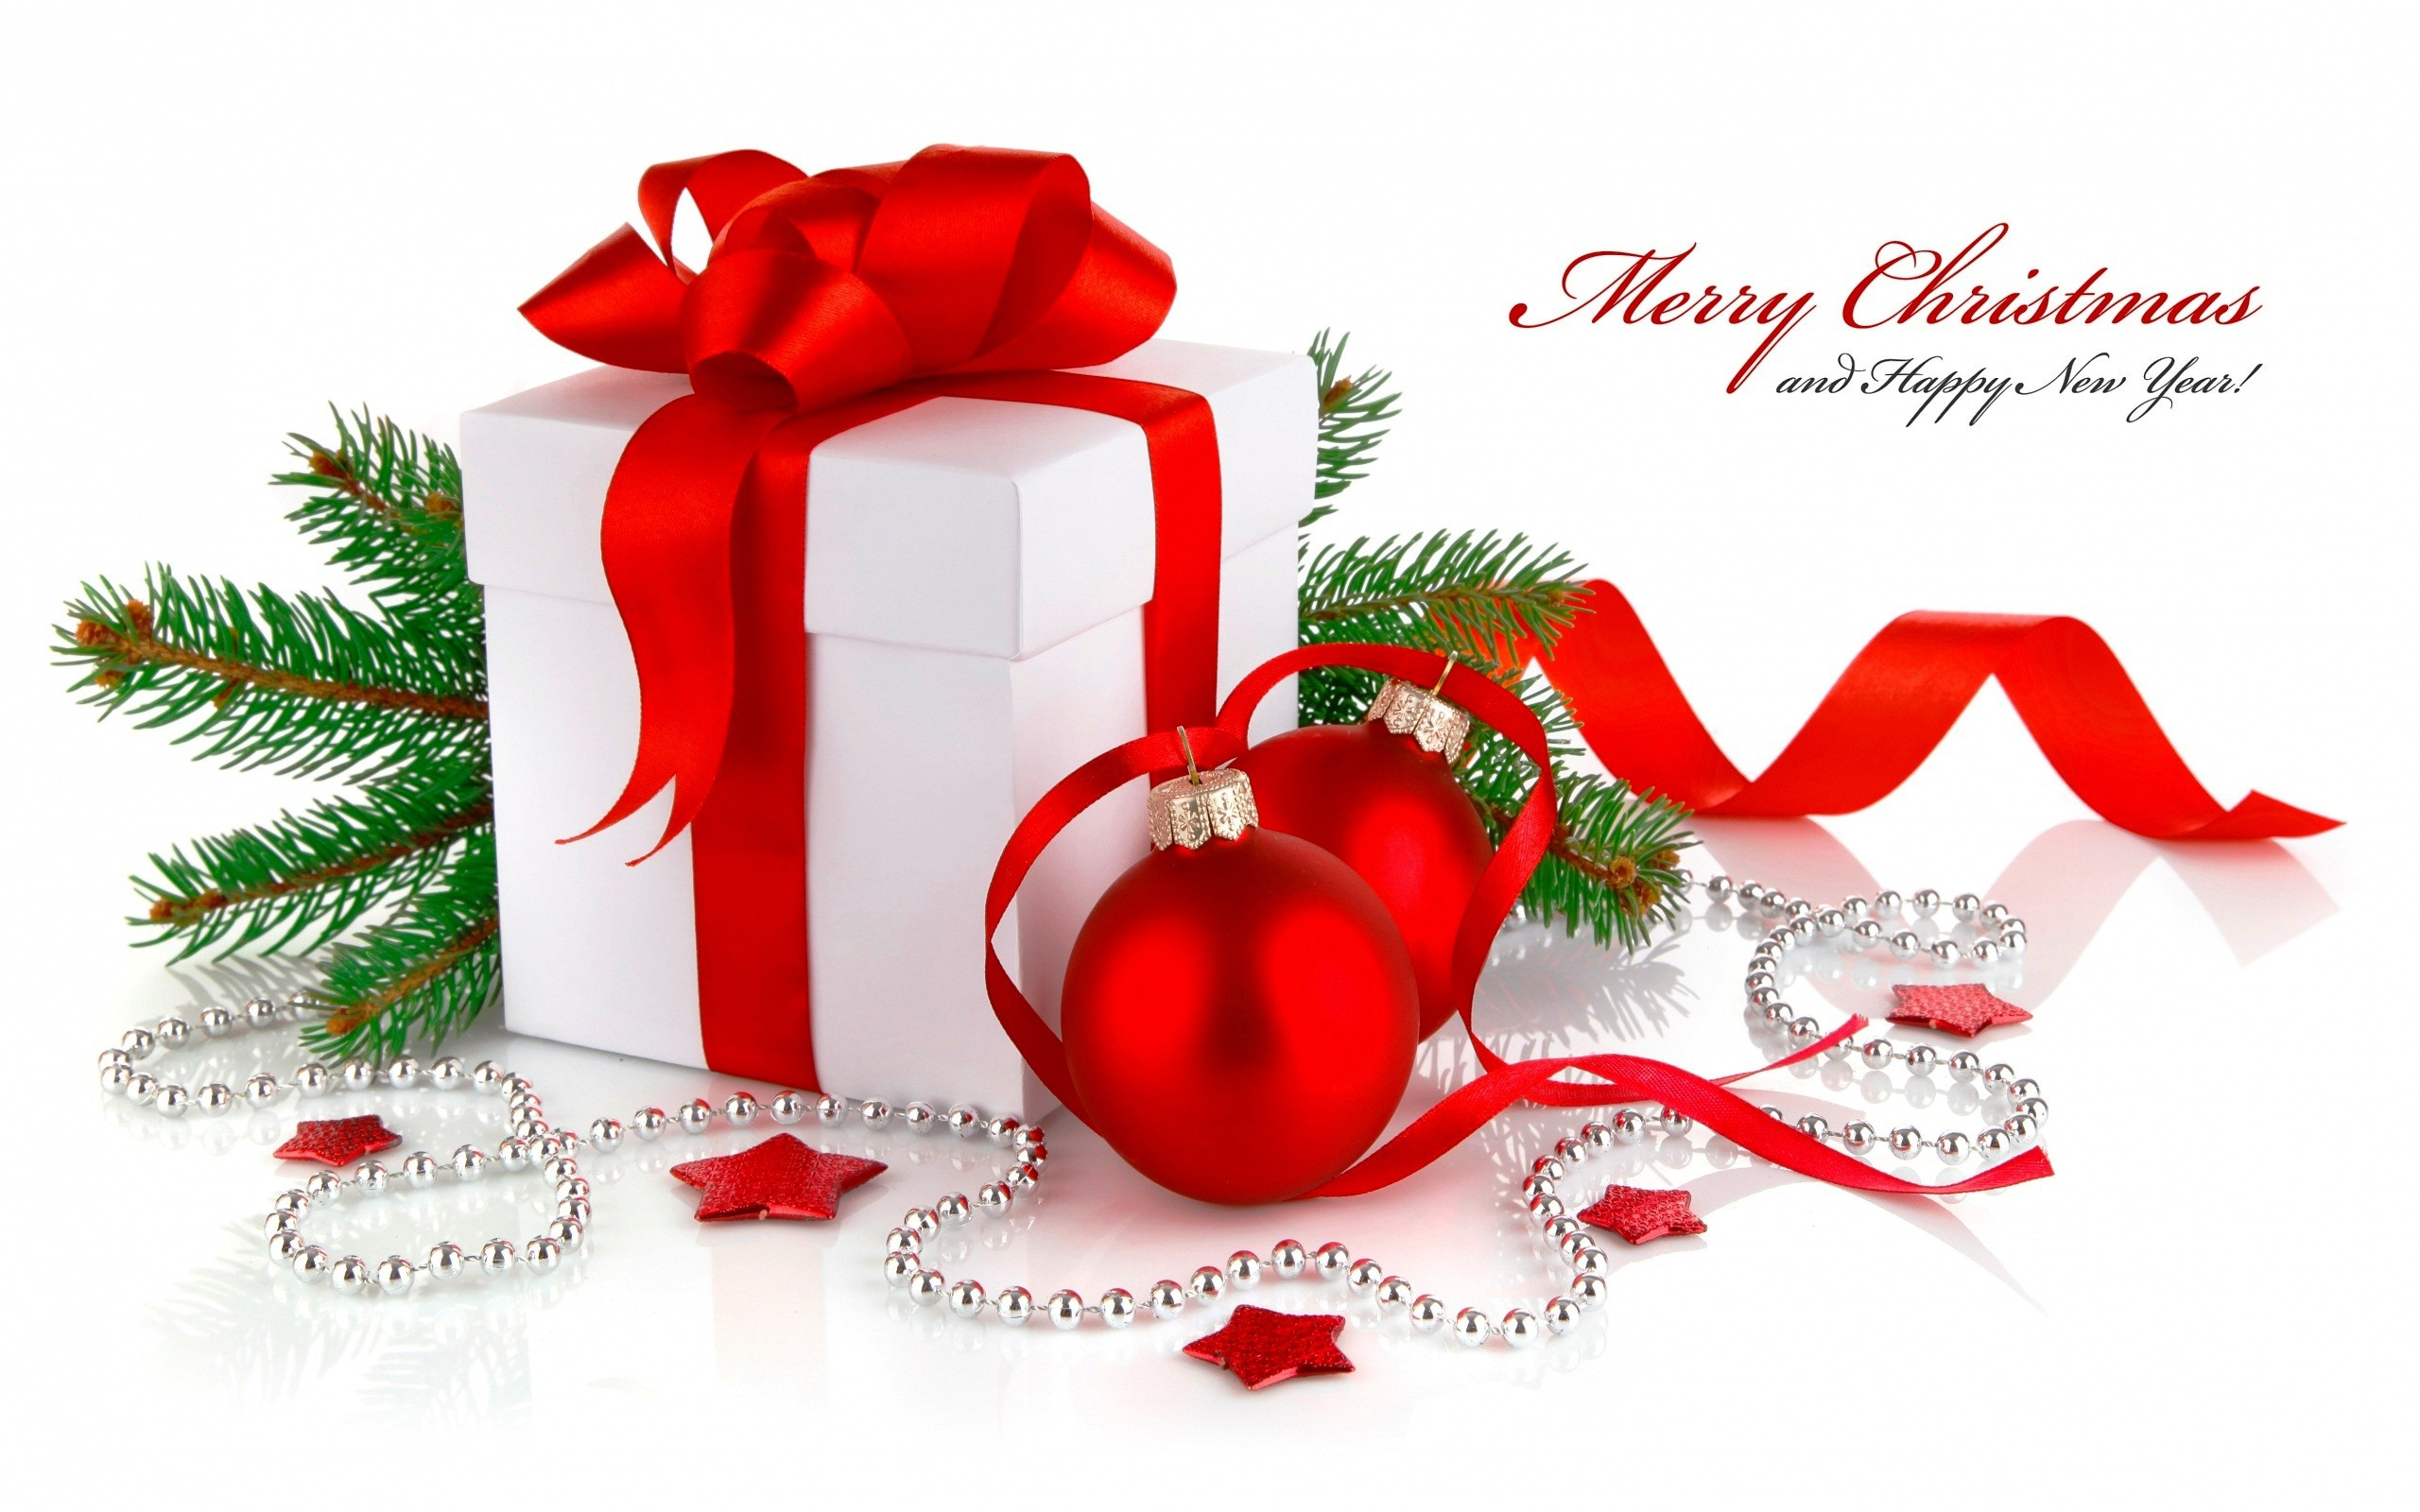 2560x1600 Christmas Gift New Year Wallpaper  26280